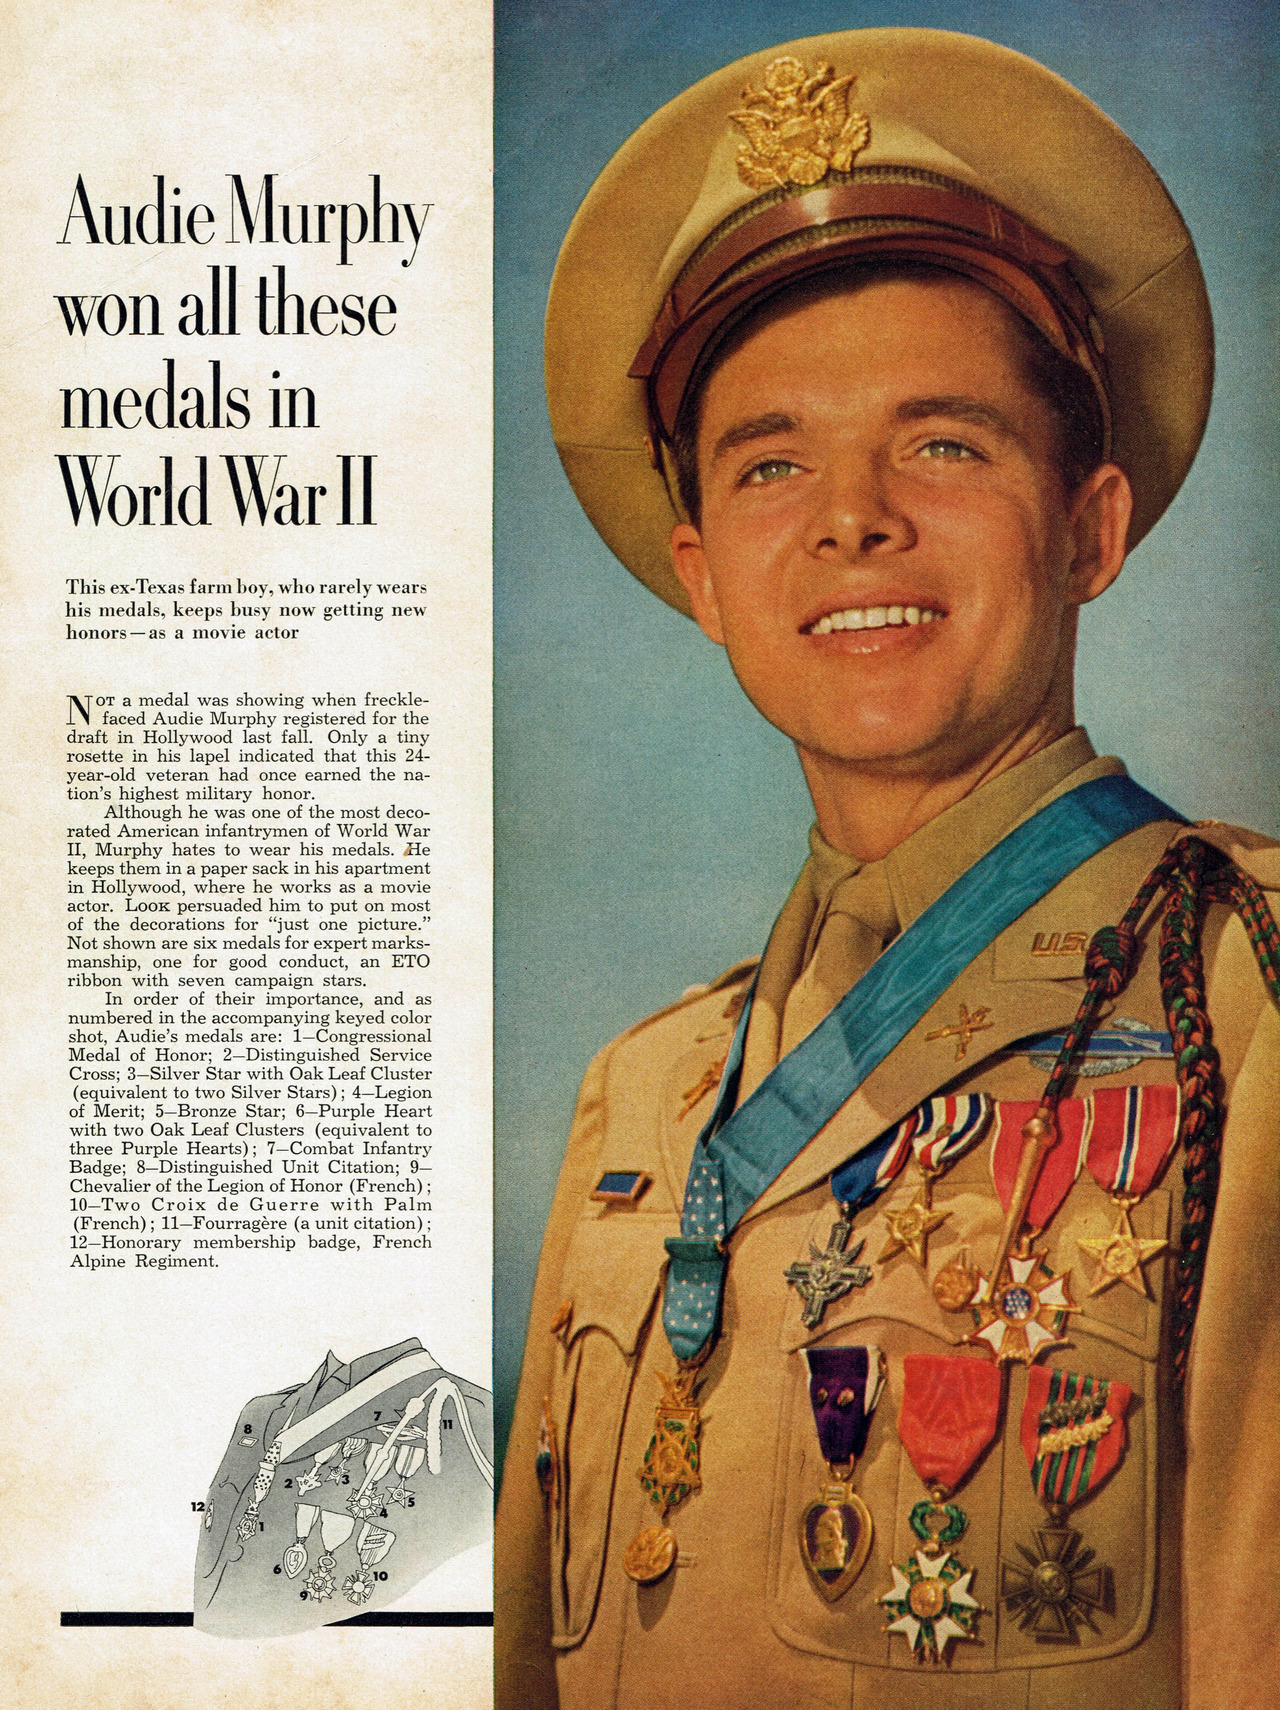 audi murphy Audie murphy/american cotton museum, greenville: see 66 reviews, articles, and 41 photos of audie murphy/american cotton museum, ranked no1 on tripadvisor among 23 attractions in greenville.